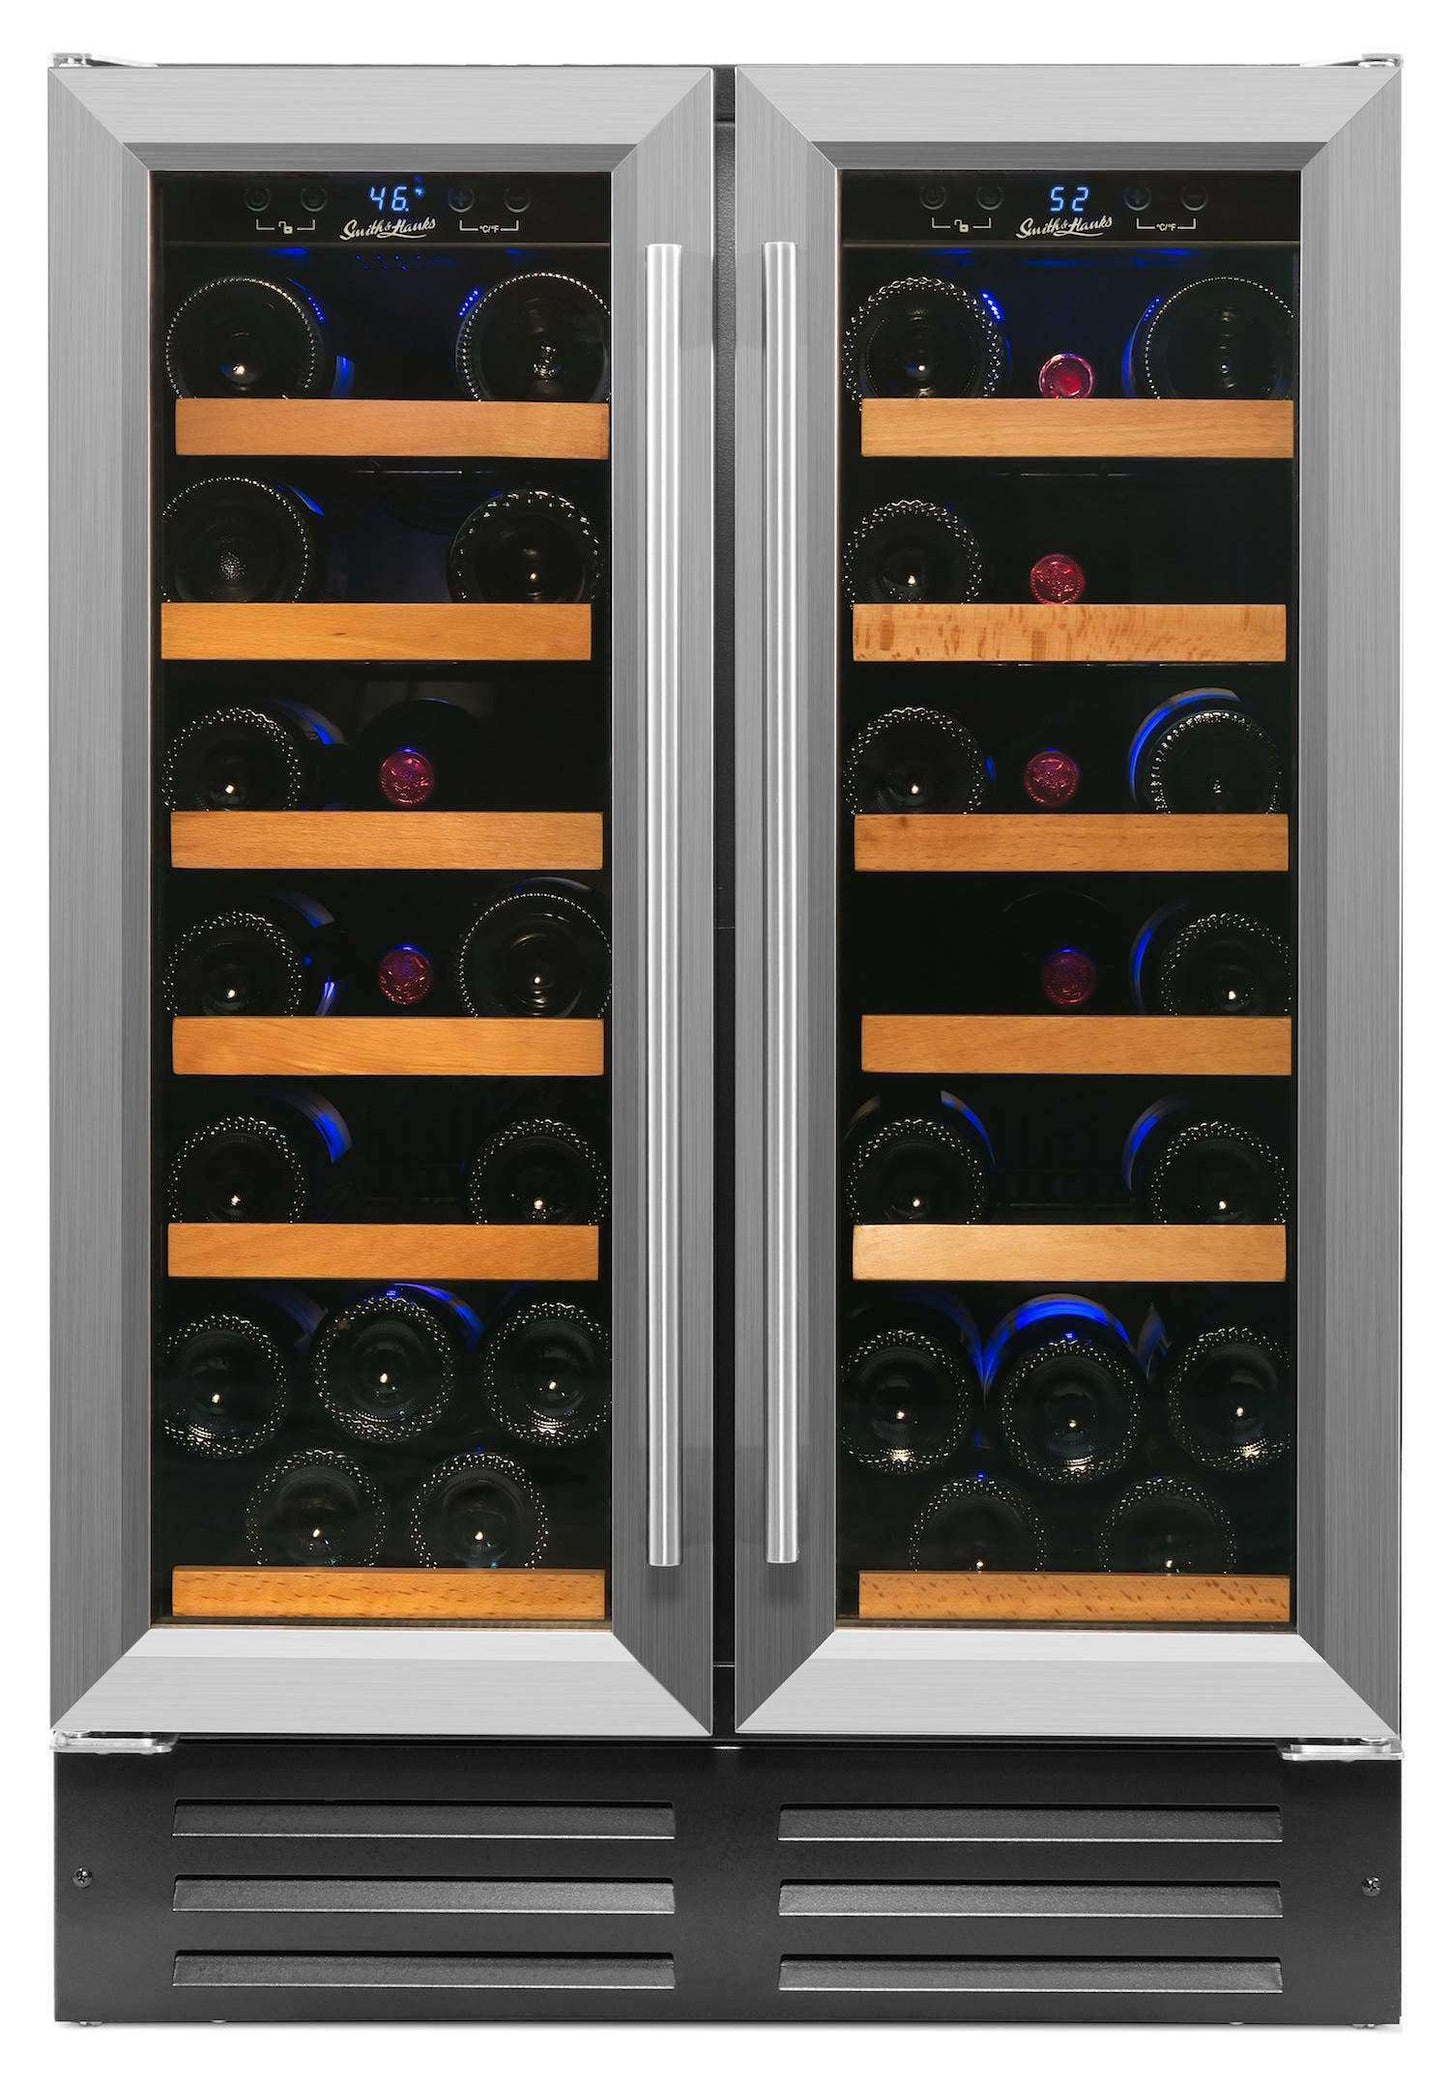 Smith & Hanks 40 Bottle Dual Zone Built-In or Free Standing Wine Cooler - RW116D,RW116D